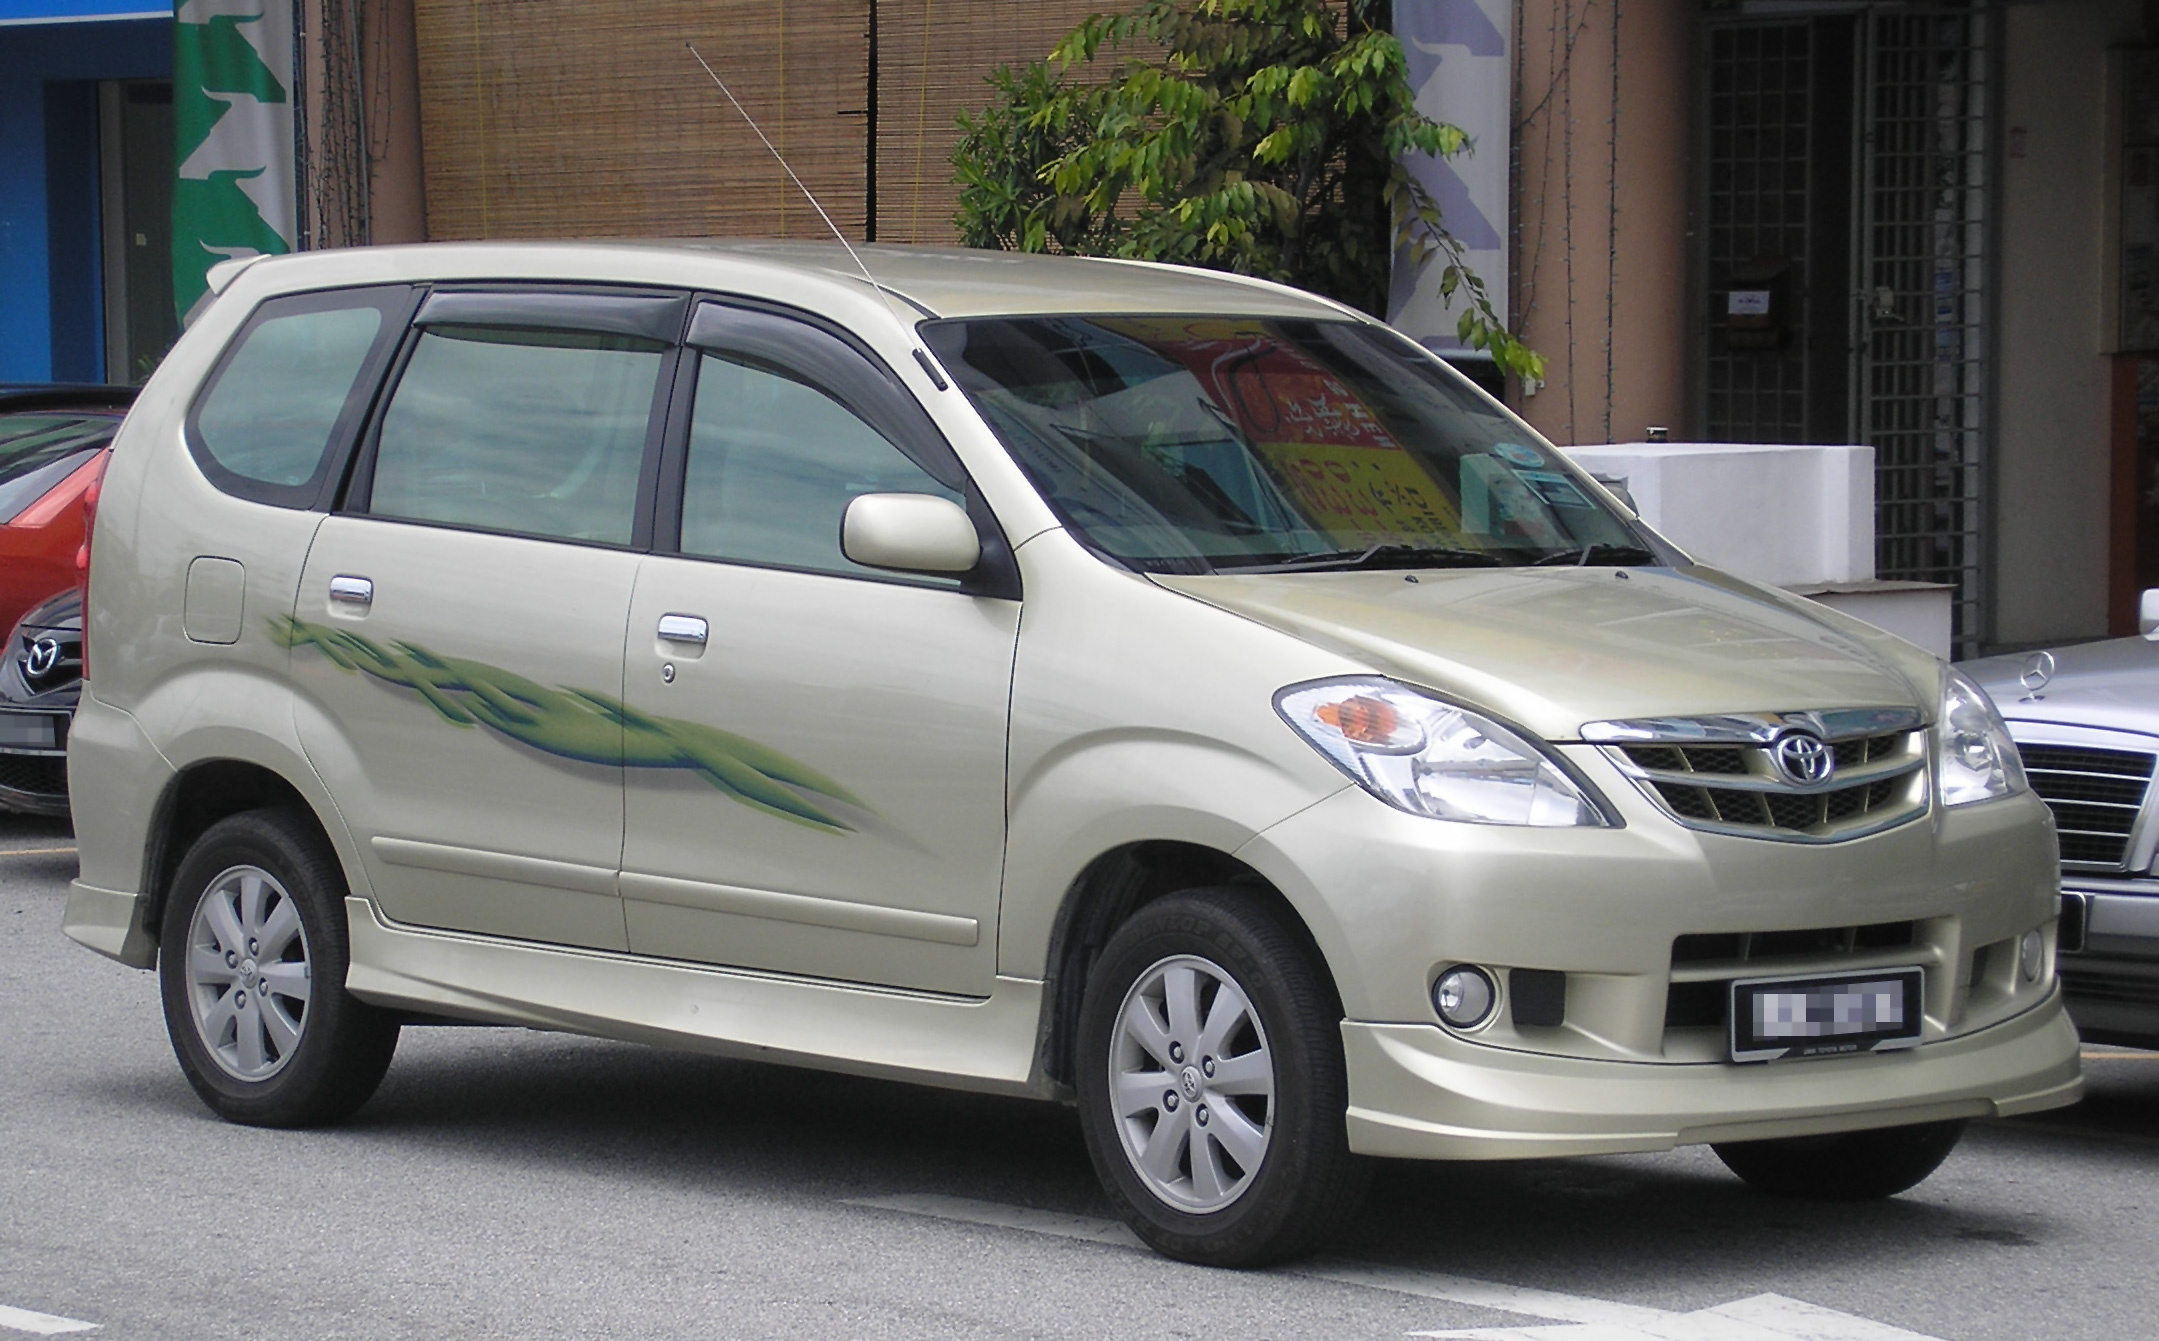 File:Toyota Avanza (first generation, first facelift) (front), Serdang ...